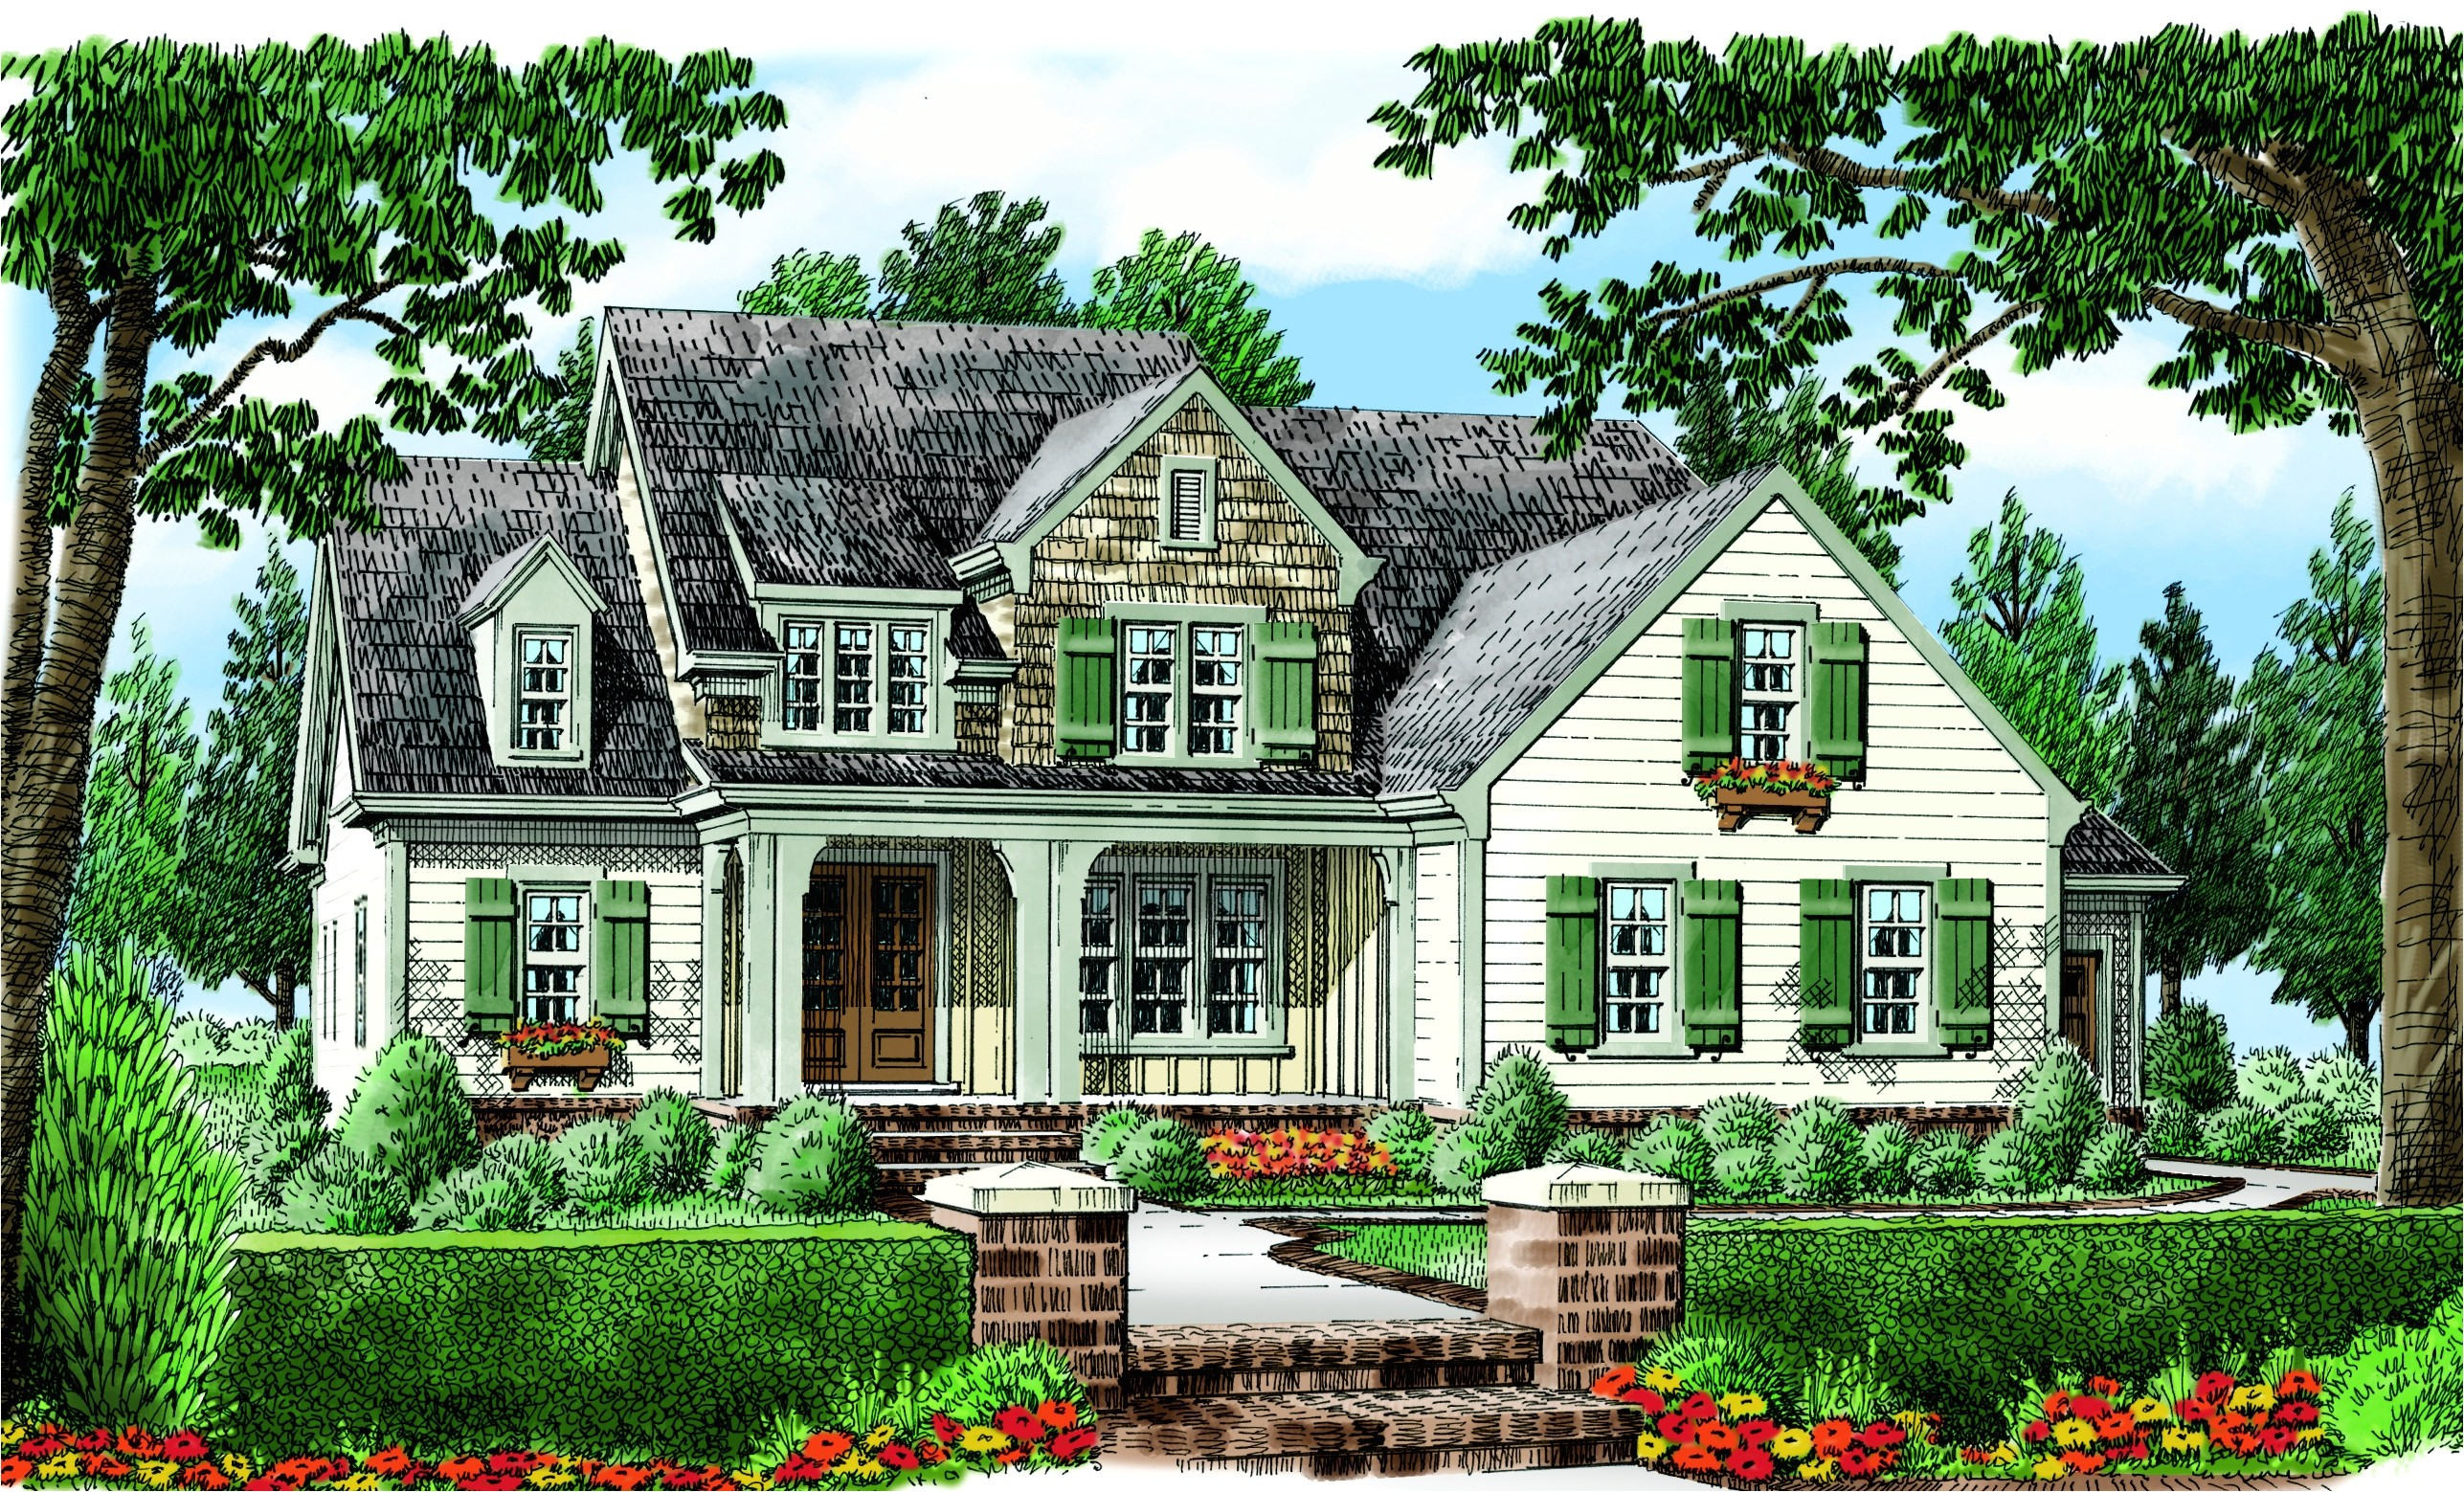 frank betz house plans with interior photos